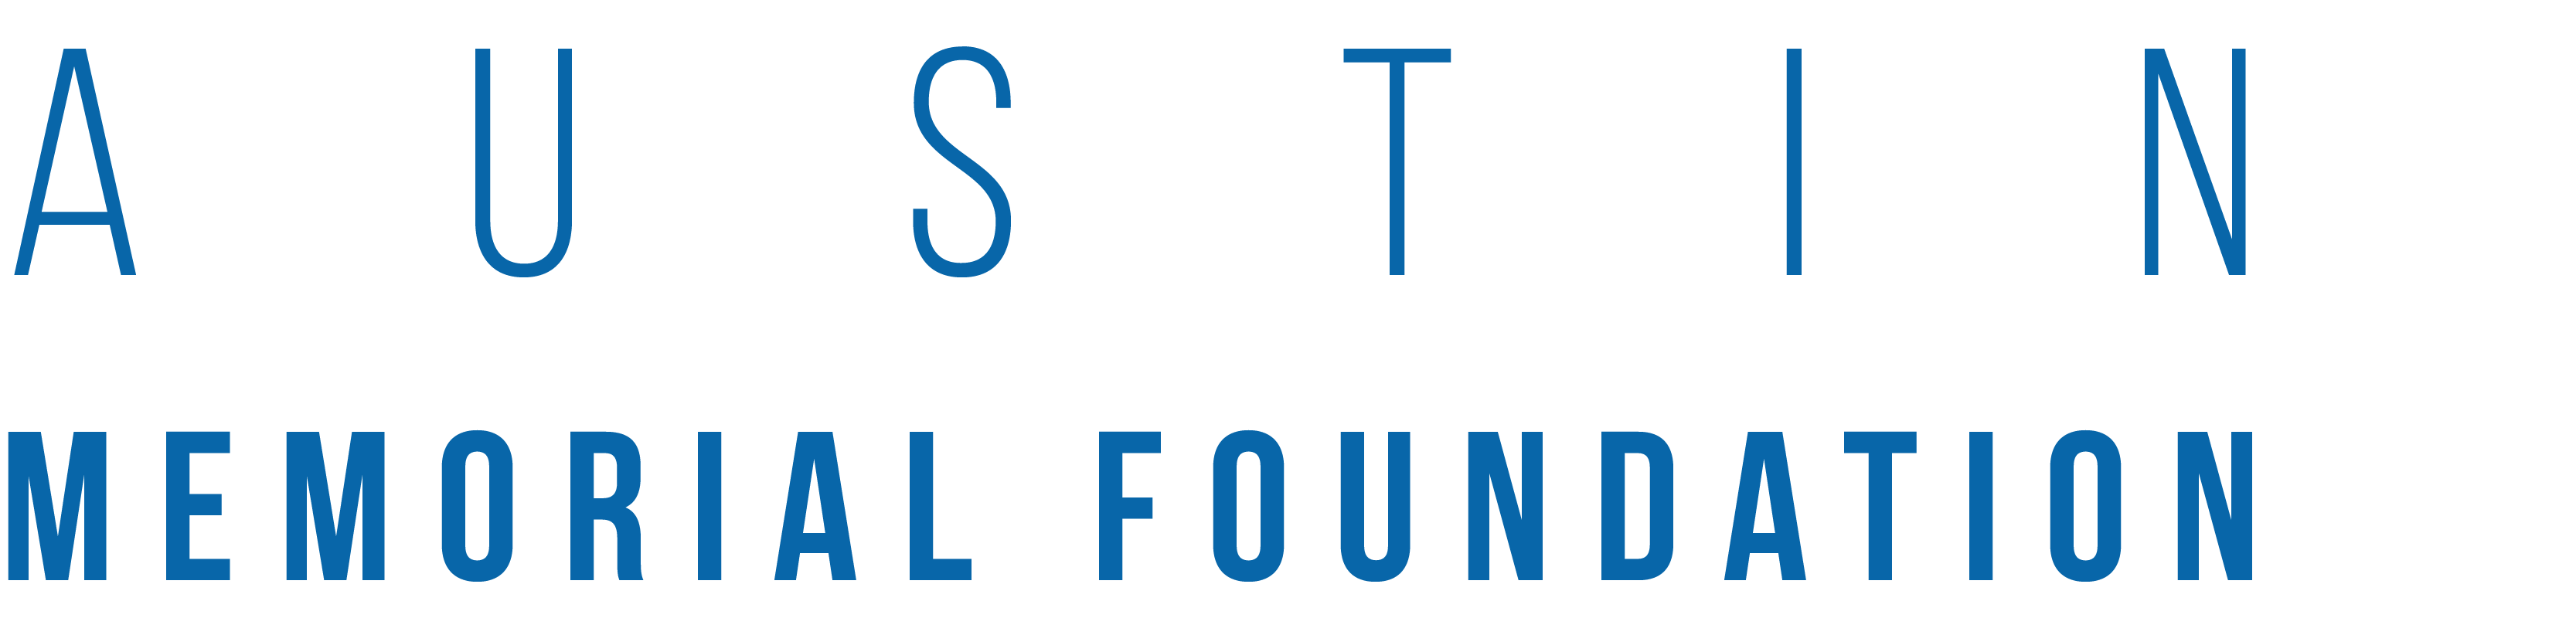 Austin Memorial Foundation